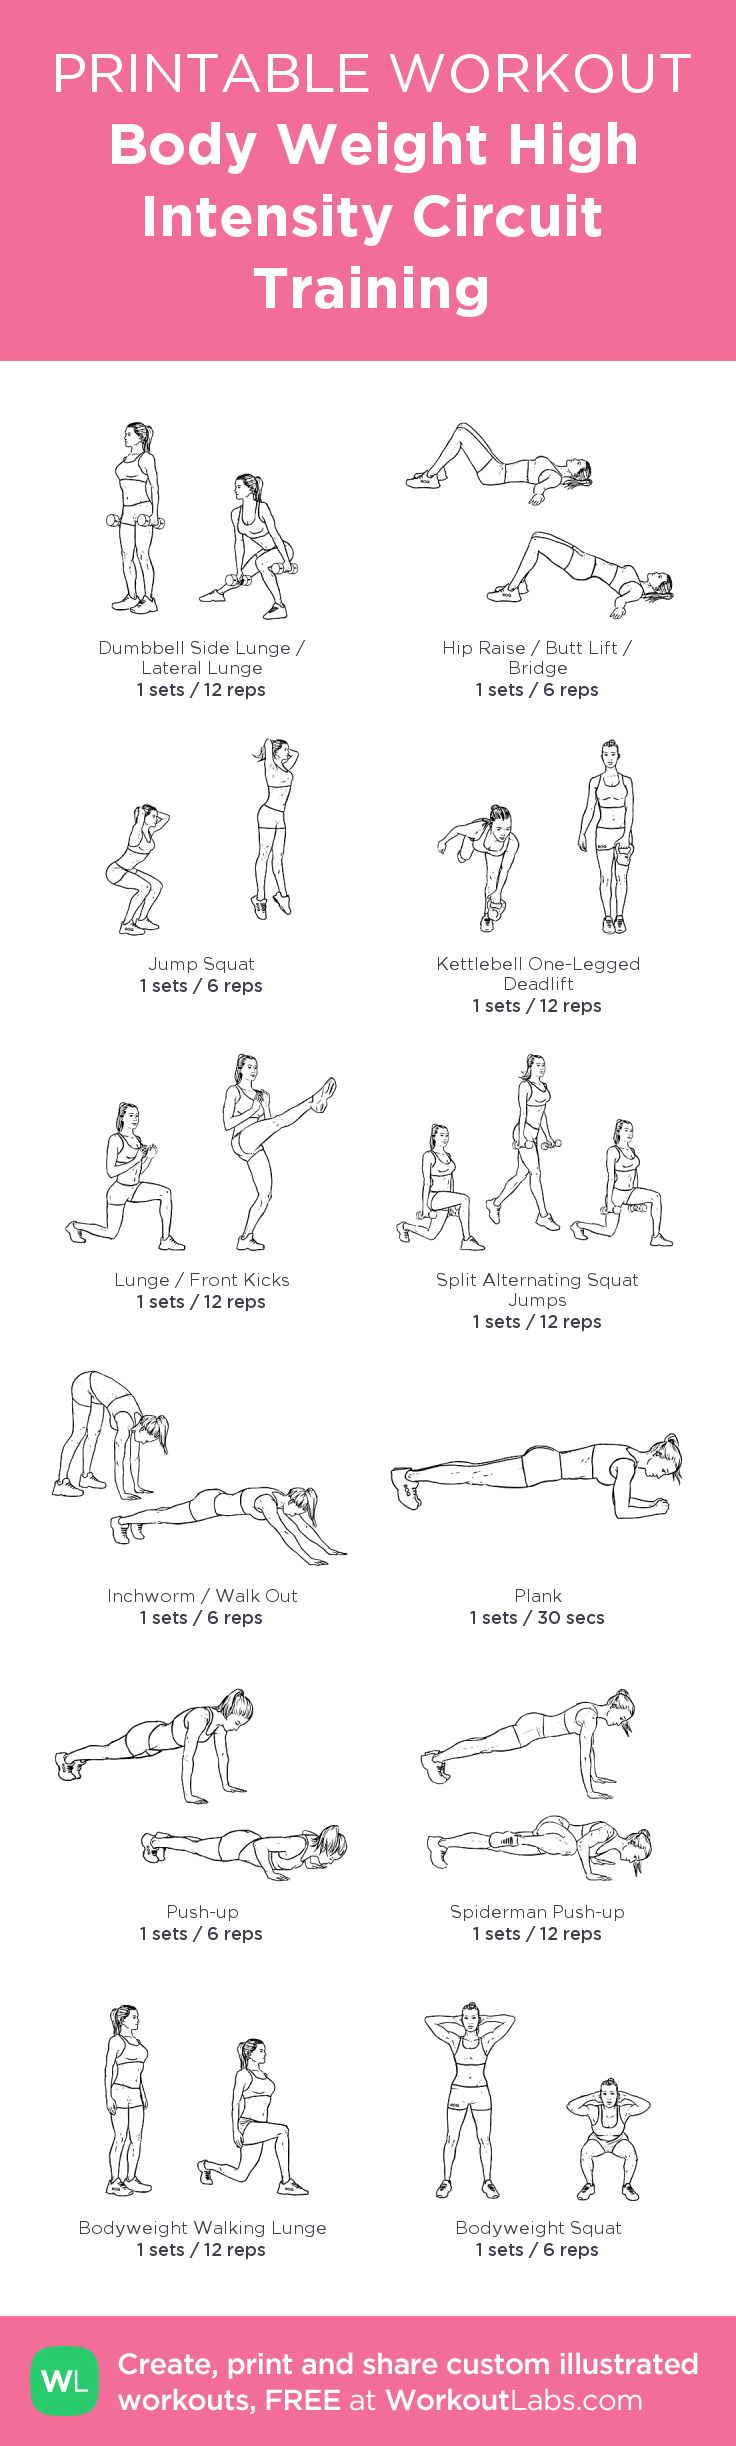 Full Body Workout: Body Weight / High Intensity Circuit Training (HIIC). 1-3 rounds with 30 second rest. You don't need the dumbells